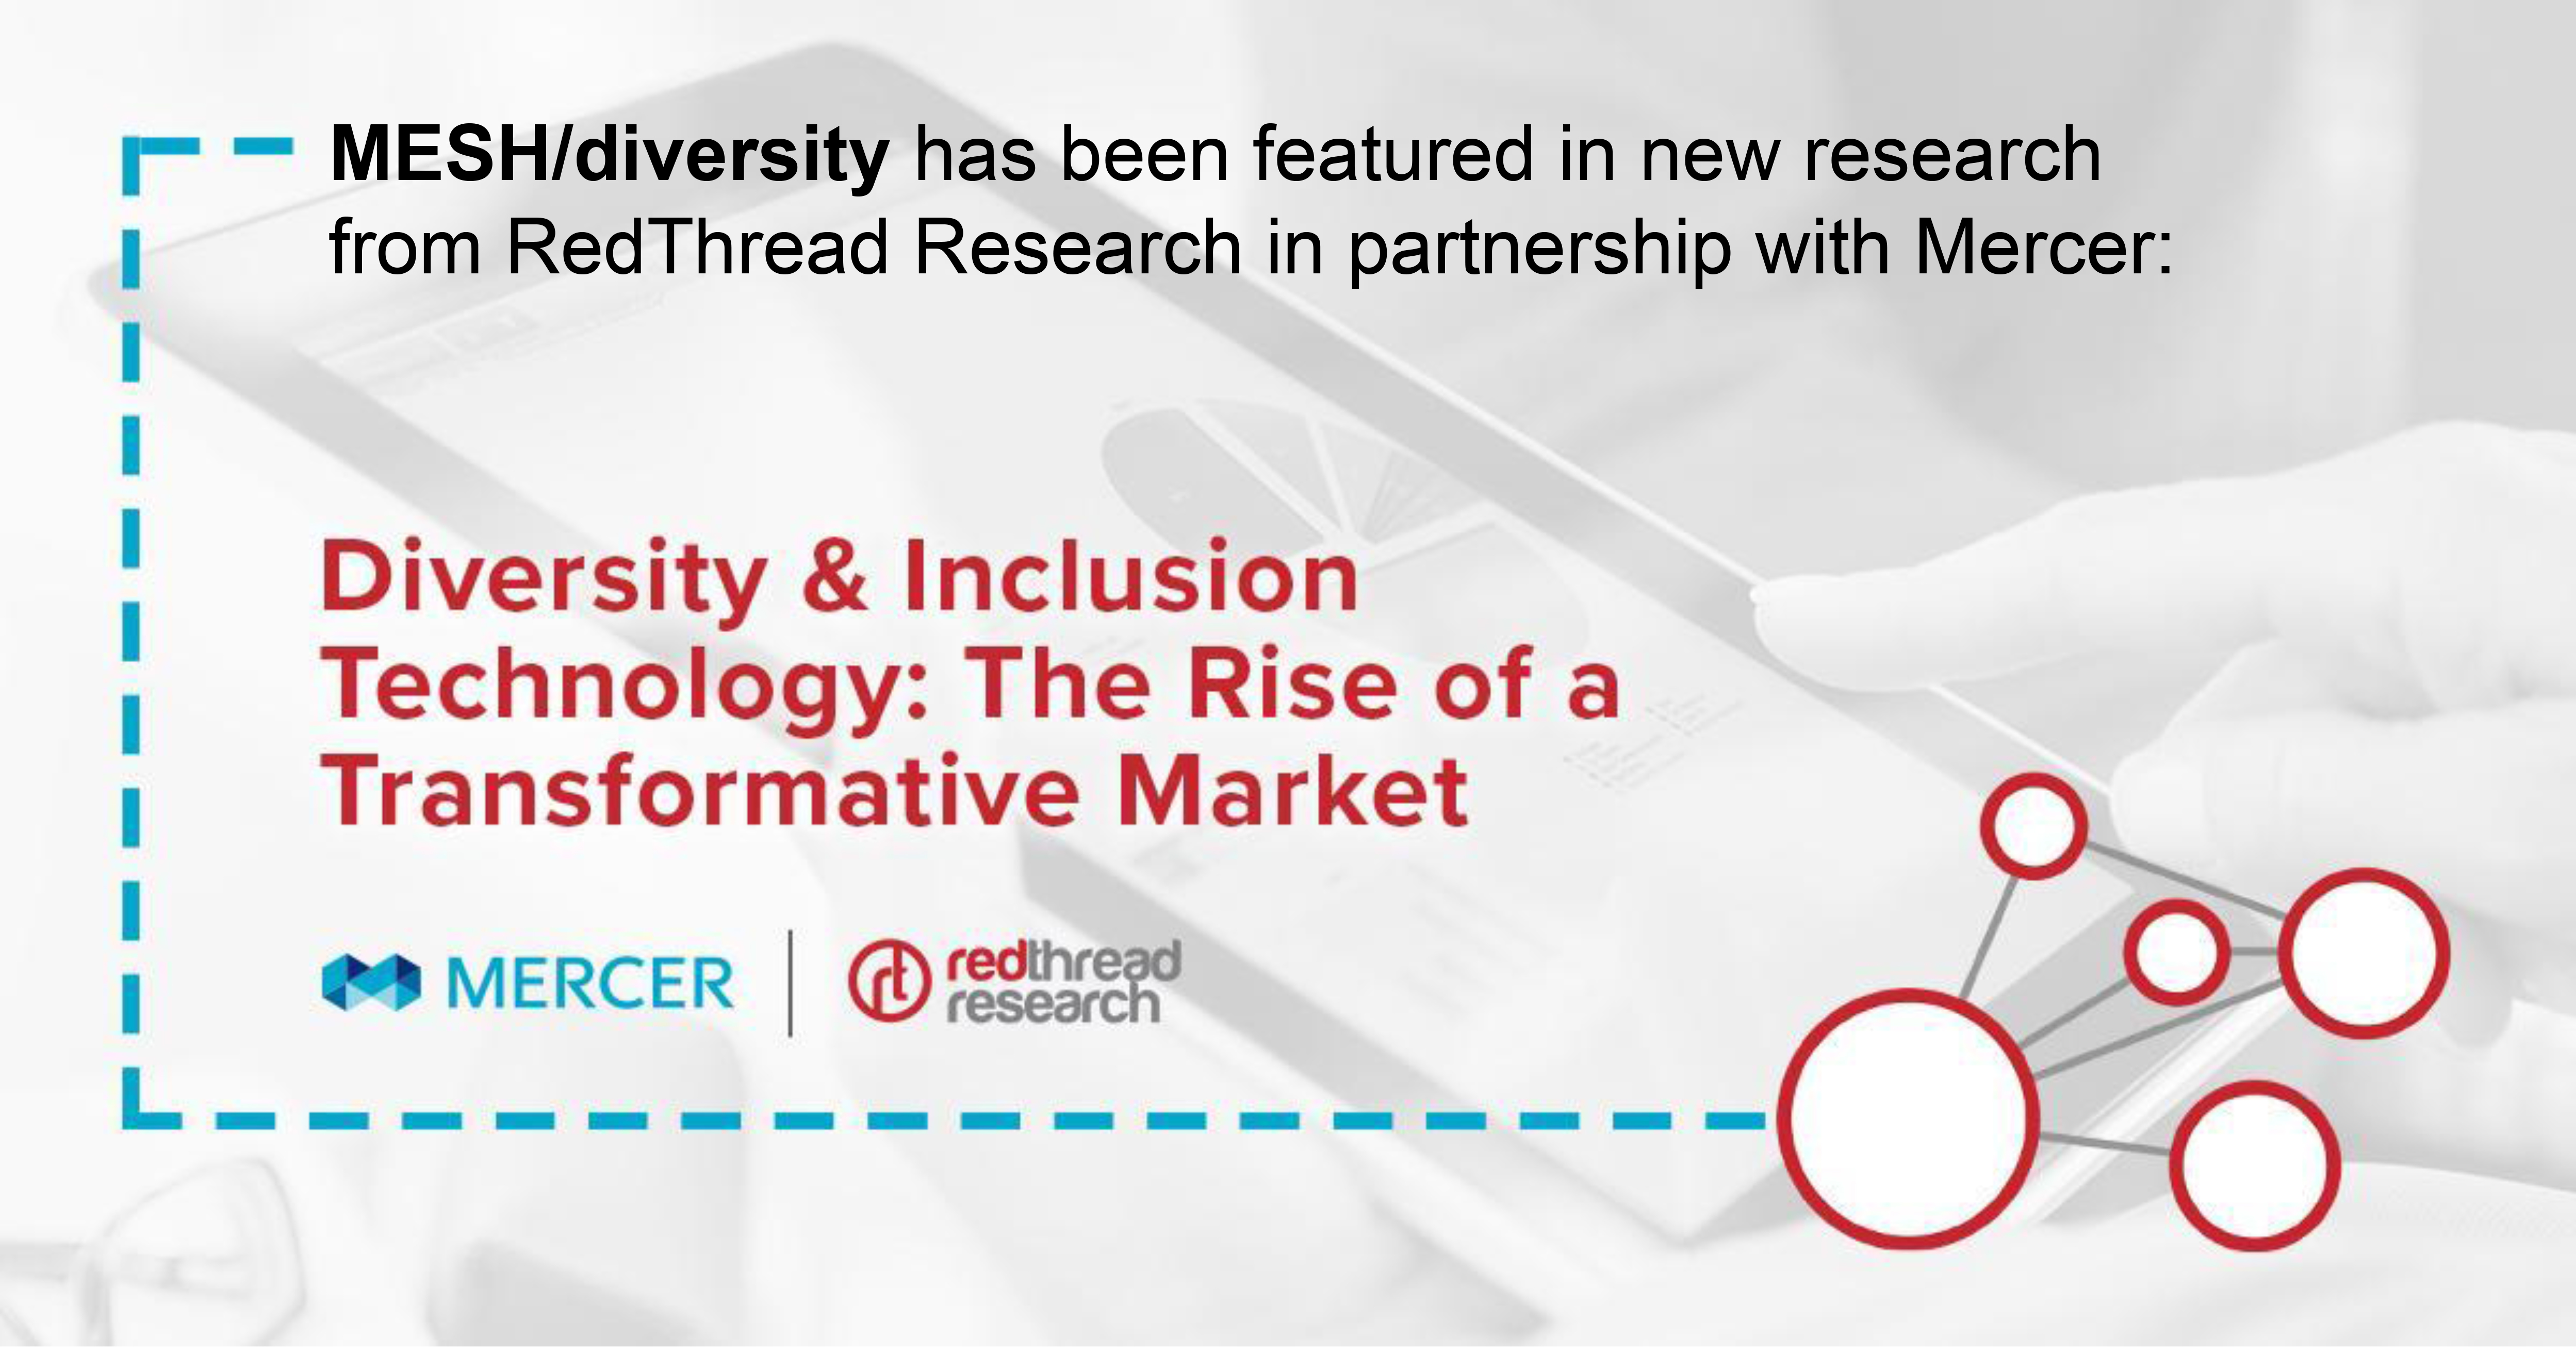 MESH/diversity featured in a report by Mercer and RedThread Research